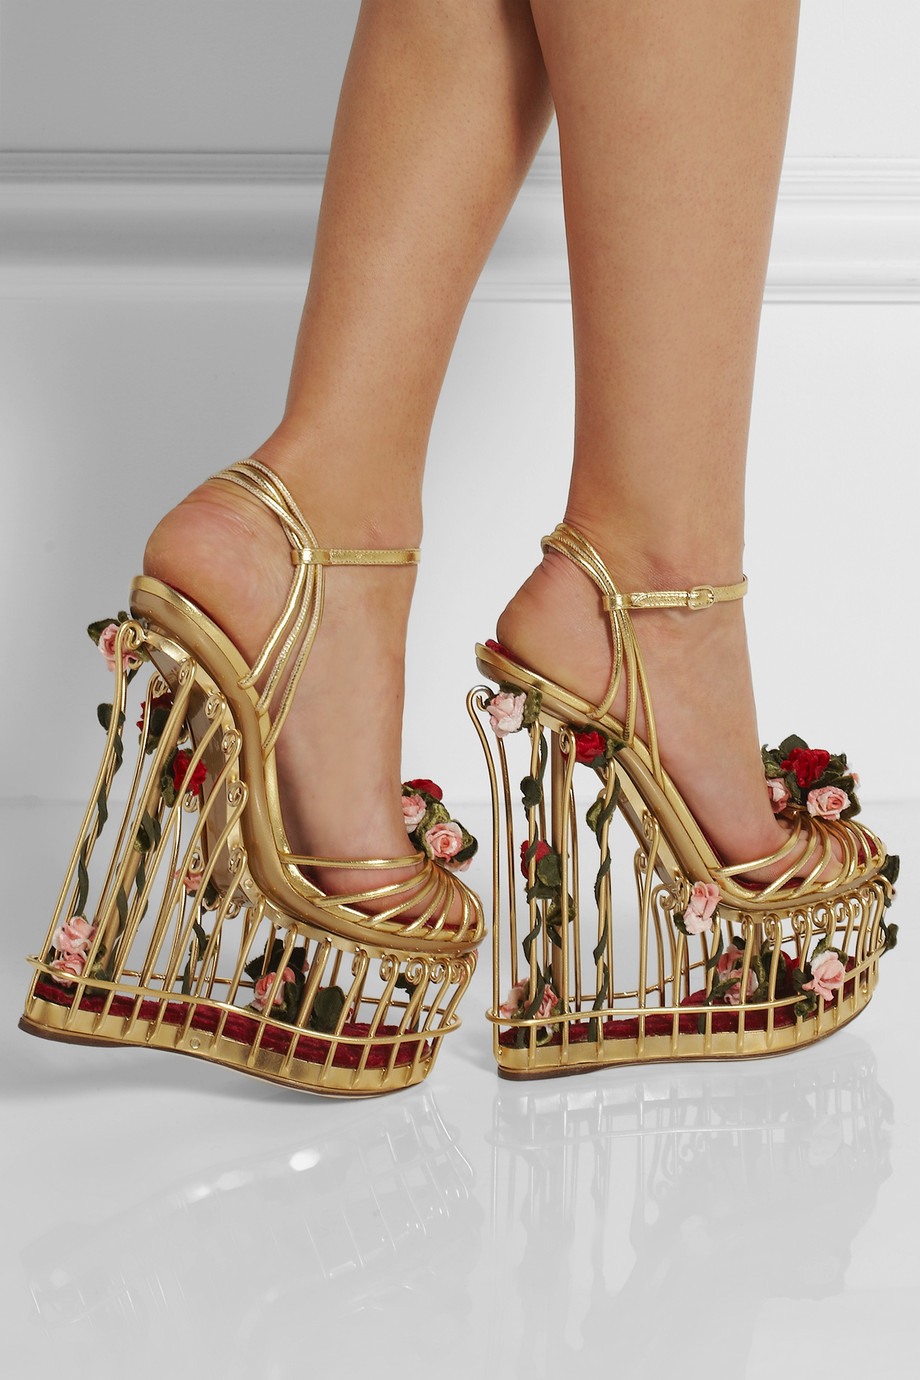 Lyst  Dolce  Gabbana Roseembellished Metallic Leather Cage Sandals in Metallic